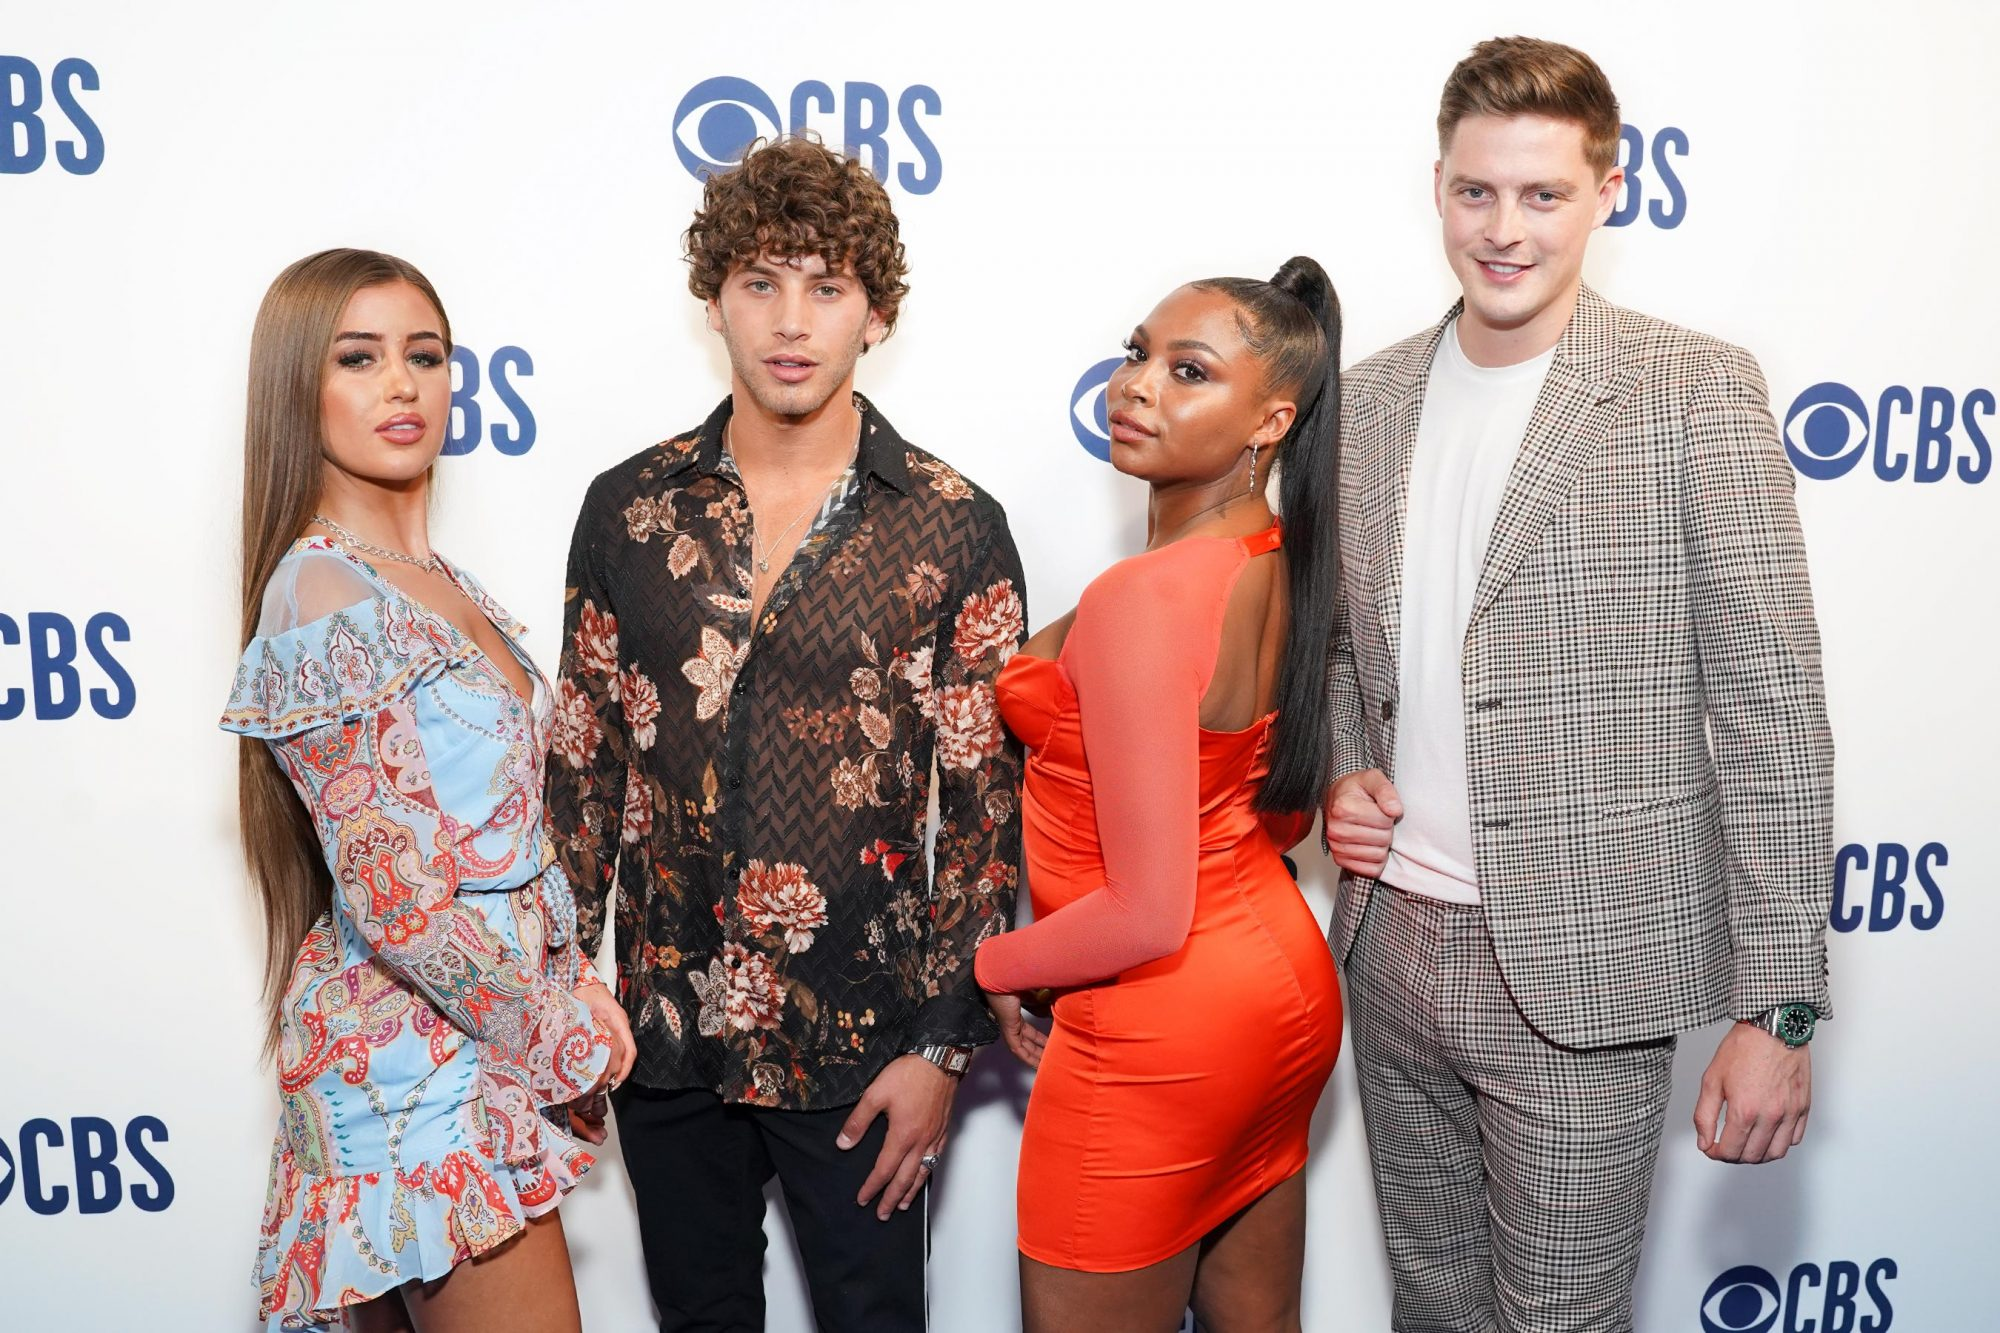 NEW YORK, NEW YORK - MAY 15: (L-R) Georgia Steel, Eyal Booker, Samira Booker and Dr. Alex George attend the 2019 CBS Upfront at The Plaza on May 15, 2019 in New York City. (Photo by Manny Carabel/WireImage)